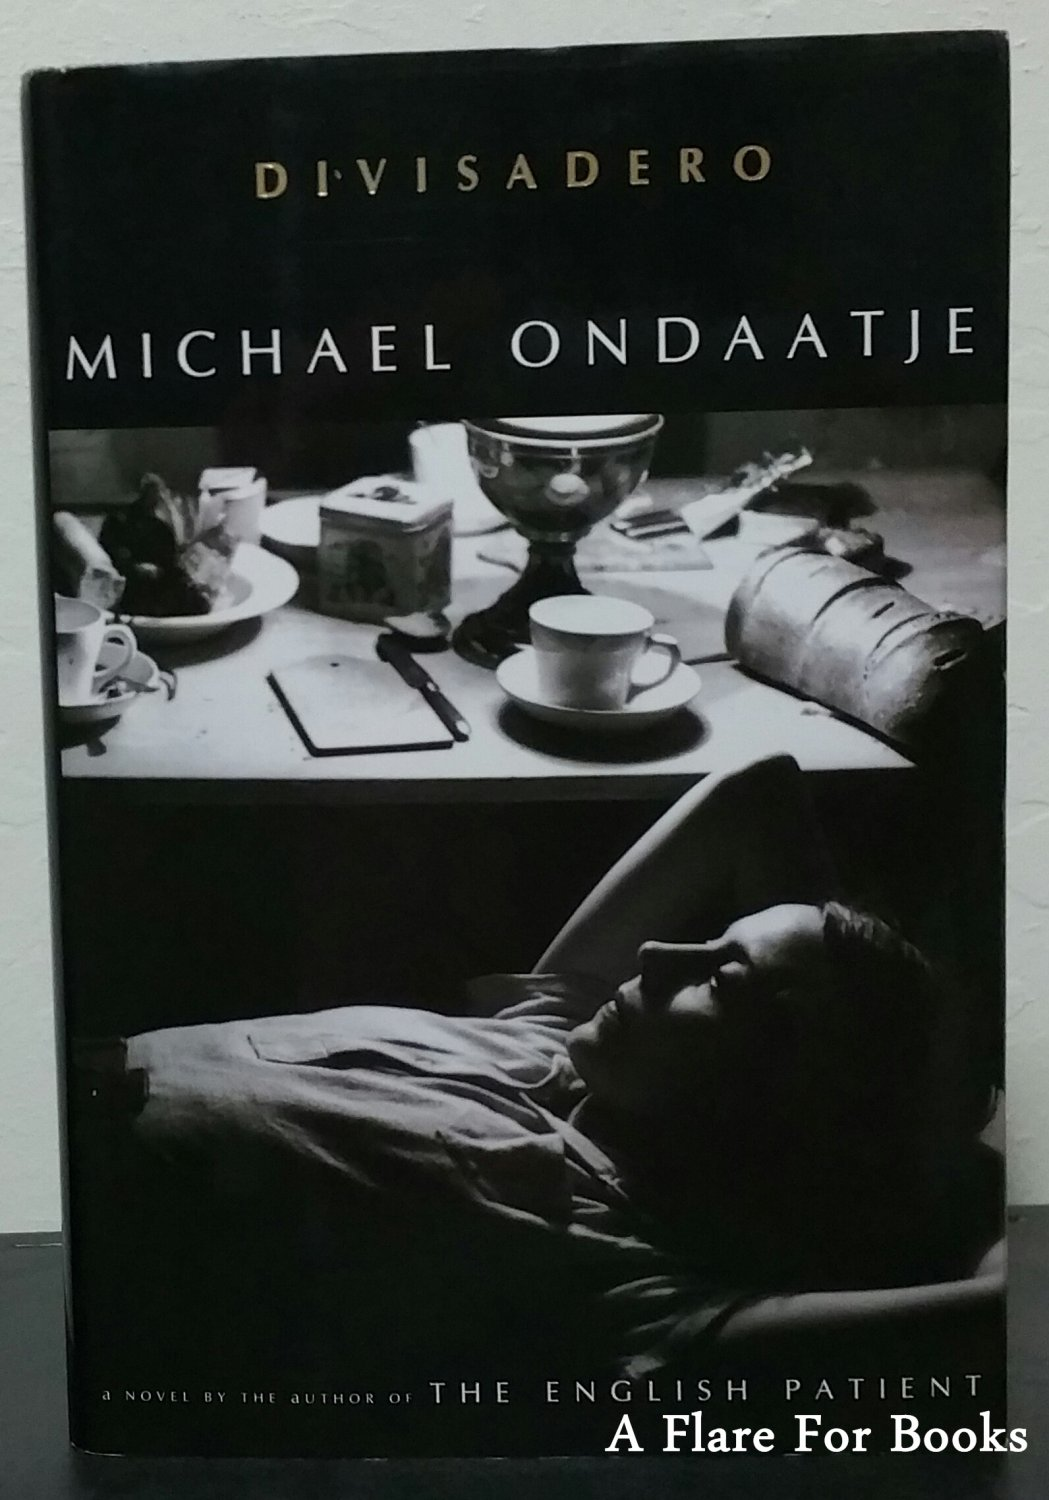 Divisadero by Michael Ondaatje - Signed 1st Hb. Edn.